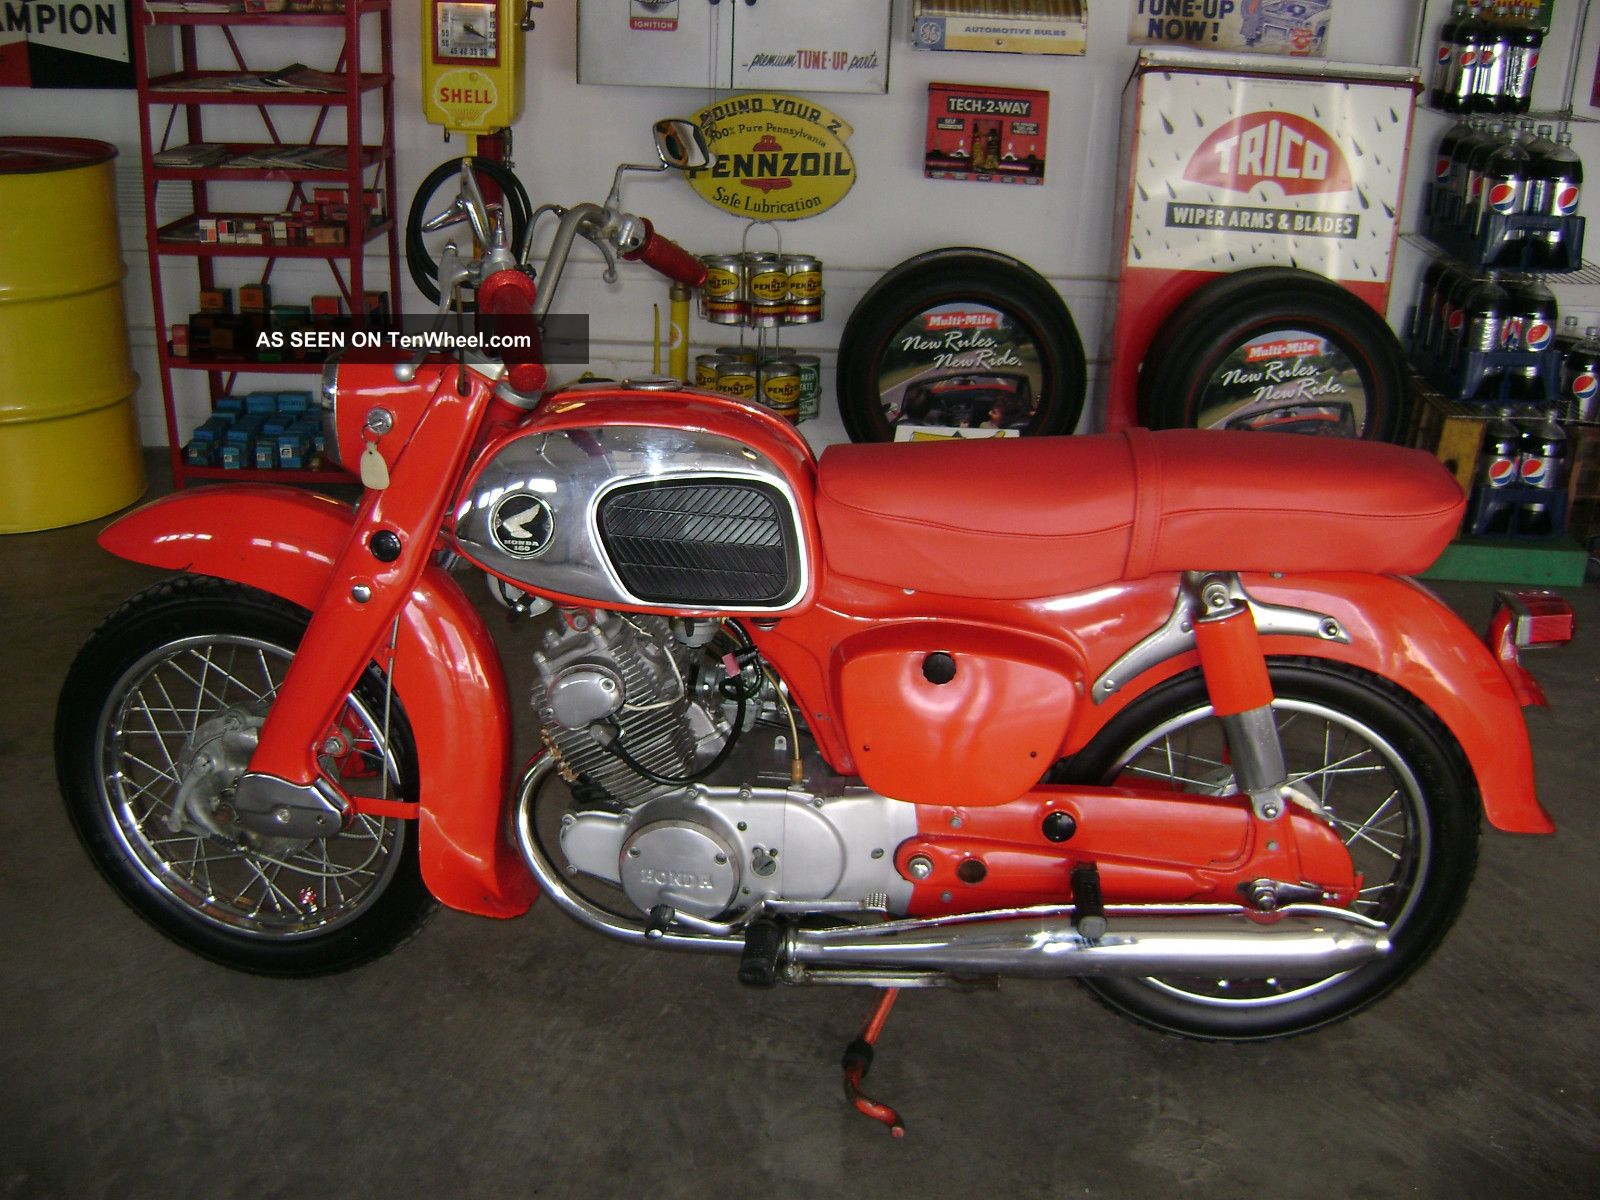 1968 Honda 160 Baby Dream / Shiners Parade Cycle / / Outstanding Survivor Other photo